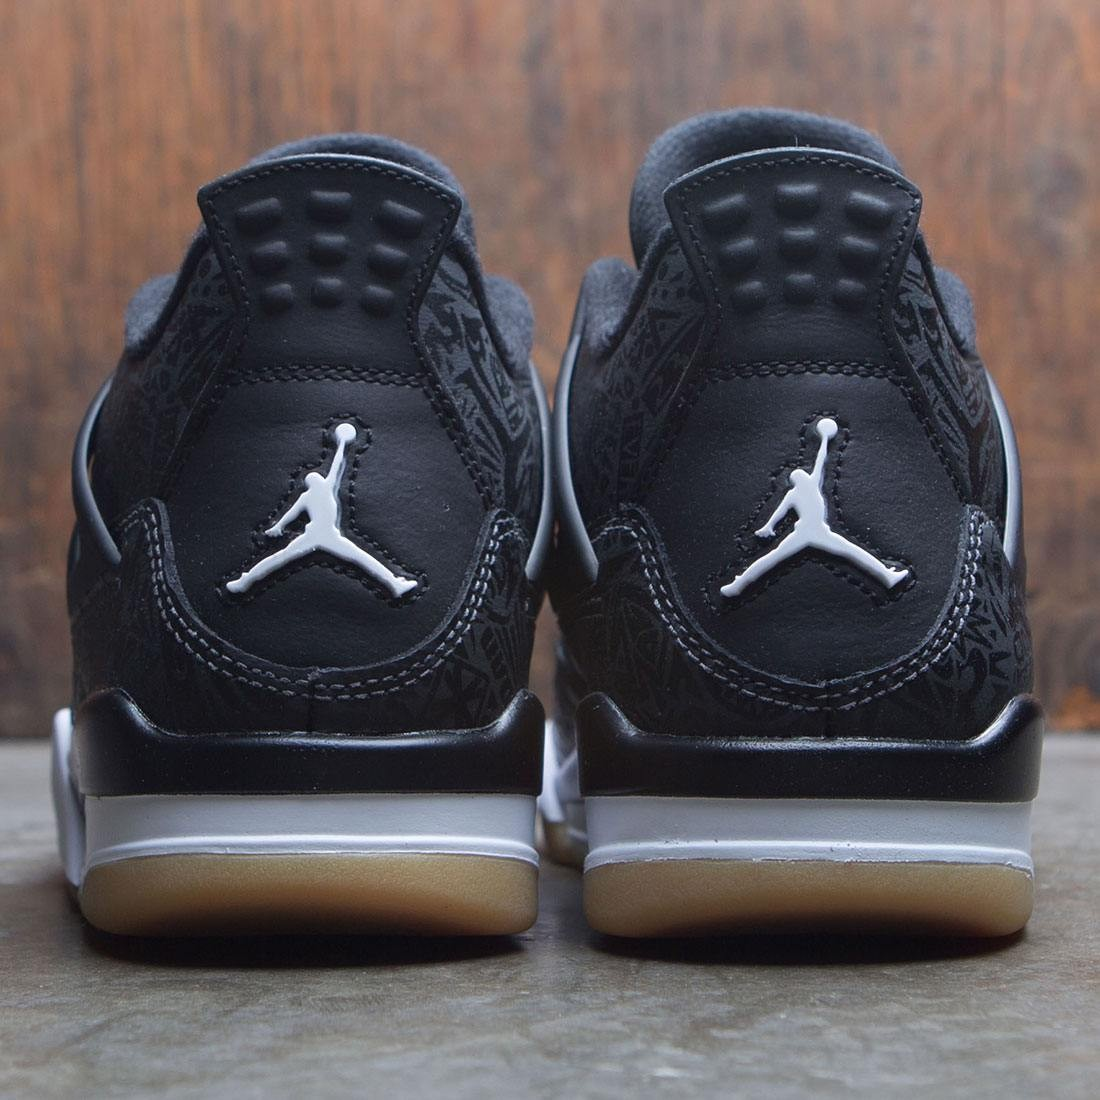 b7e63a9aff6 jordan big kids air jordan 4 retro se gs black white gum light brown